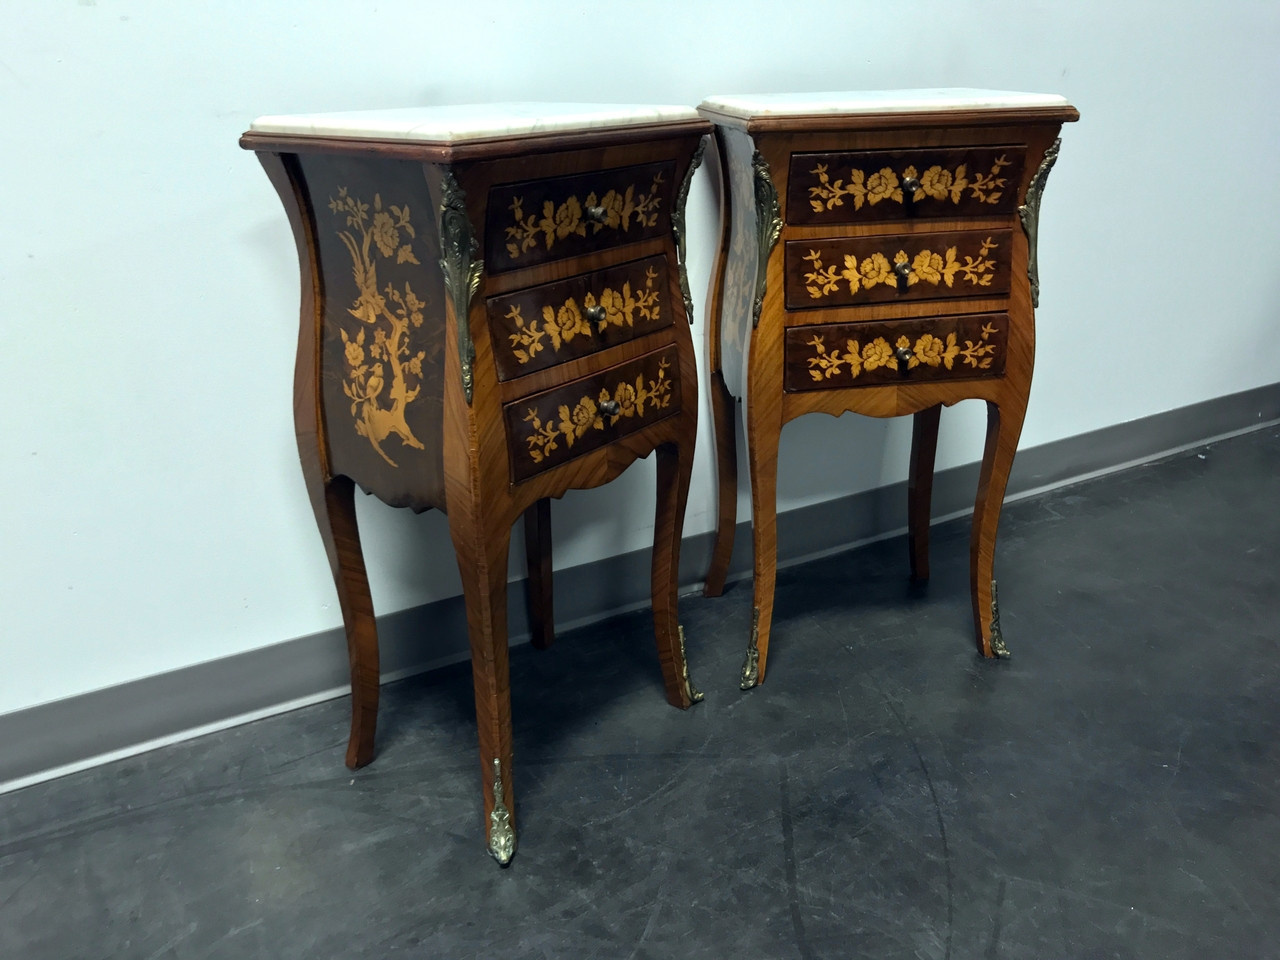 Sold Out Petite French Provincial Louis Xv Style Marquetry Inlaid Marble Top Nightstands Pair